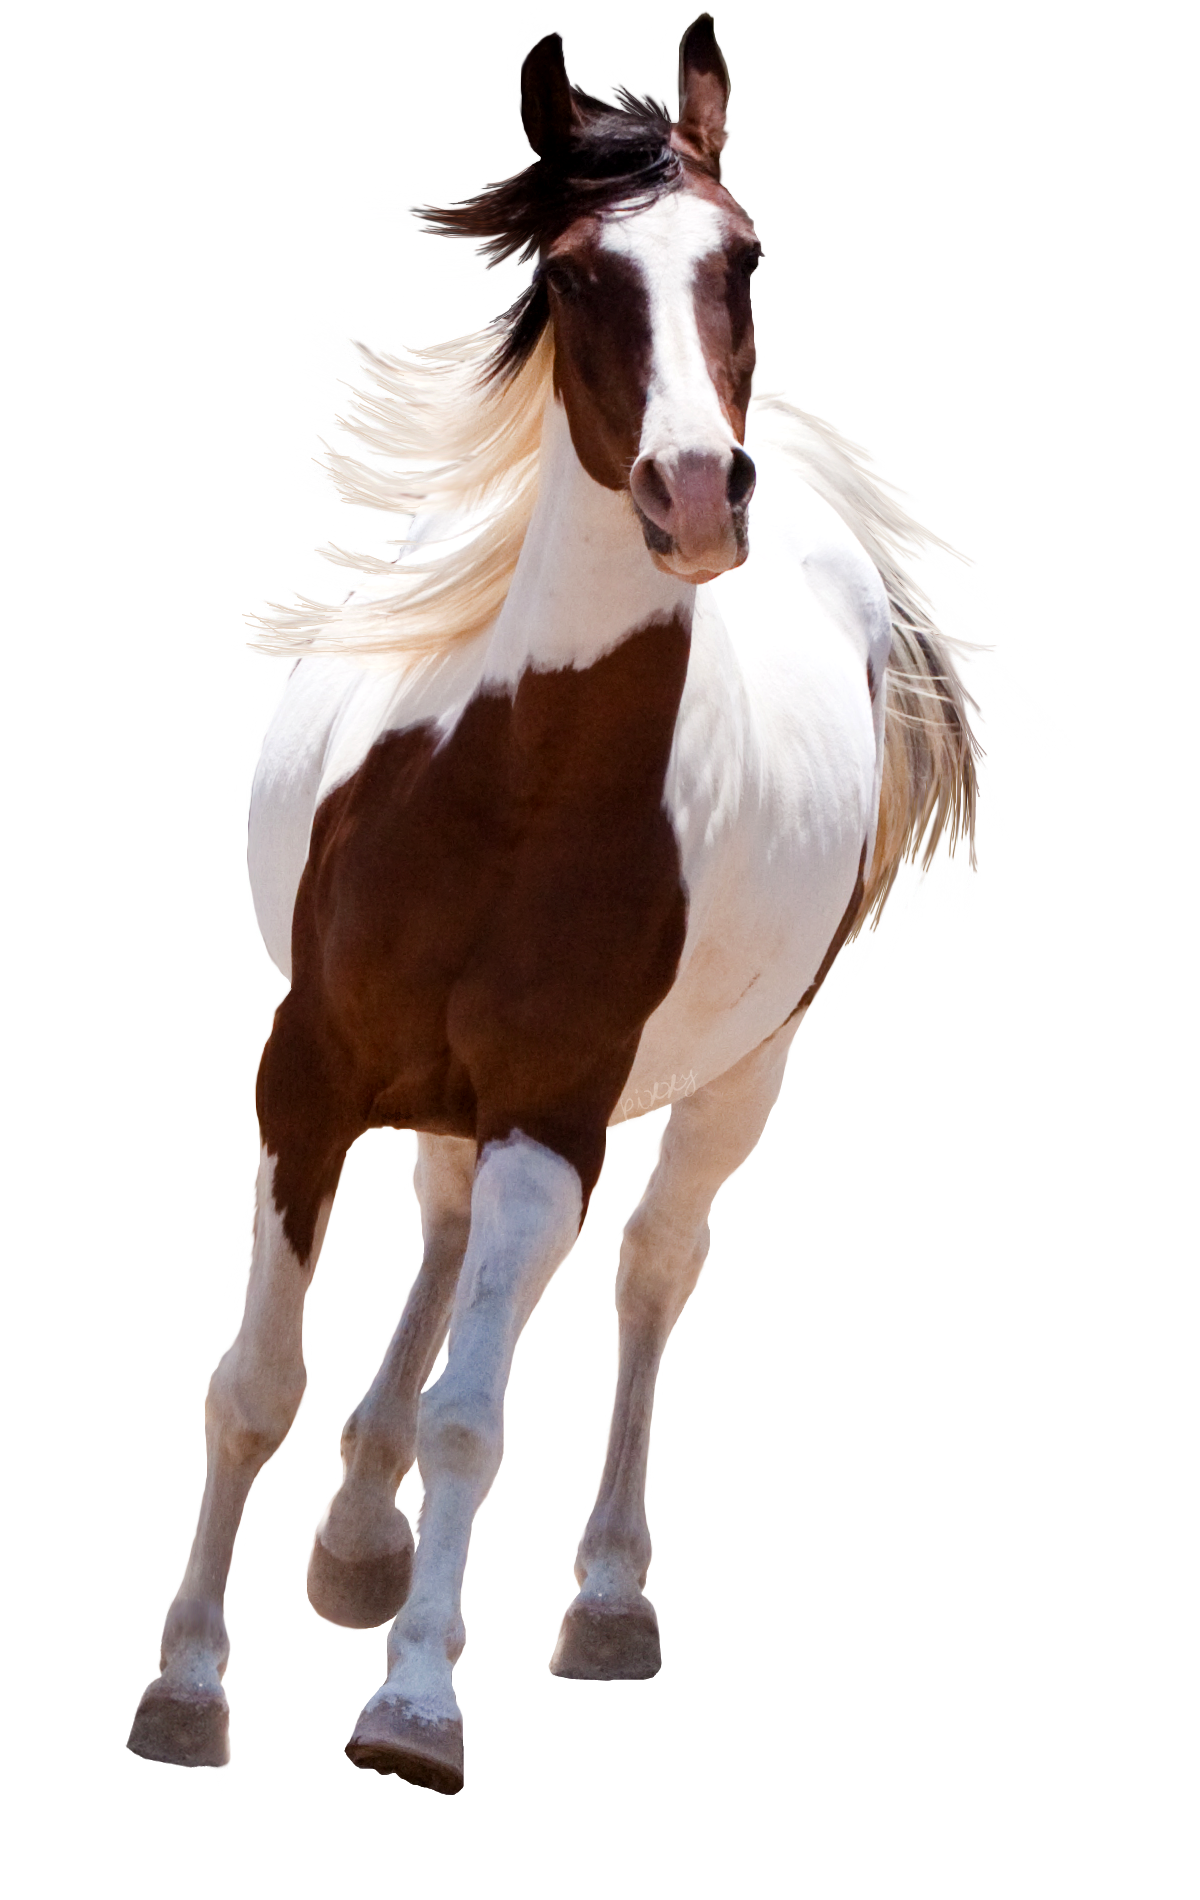 running horse png runing horse png on land standing horse Running Horse Png